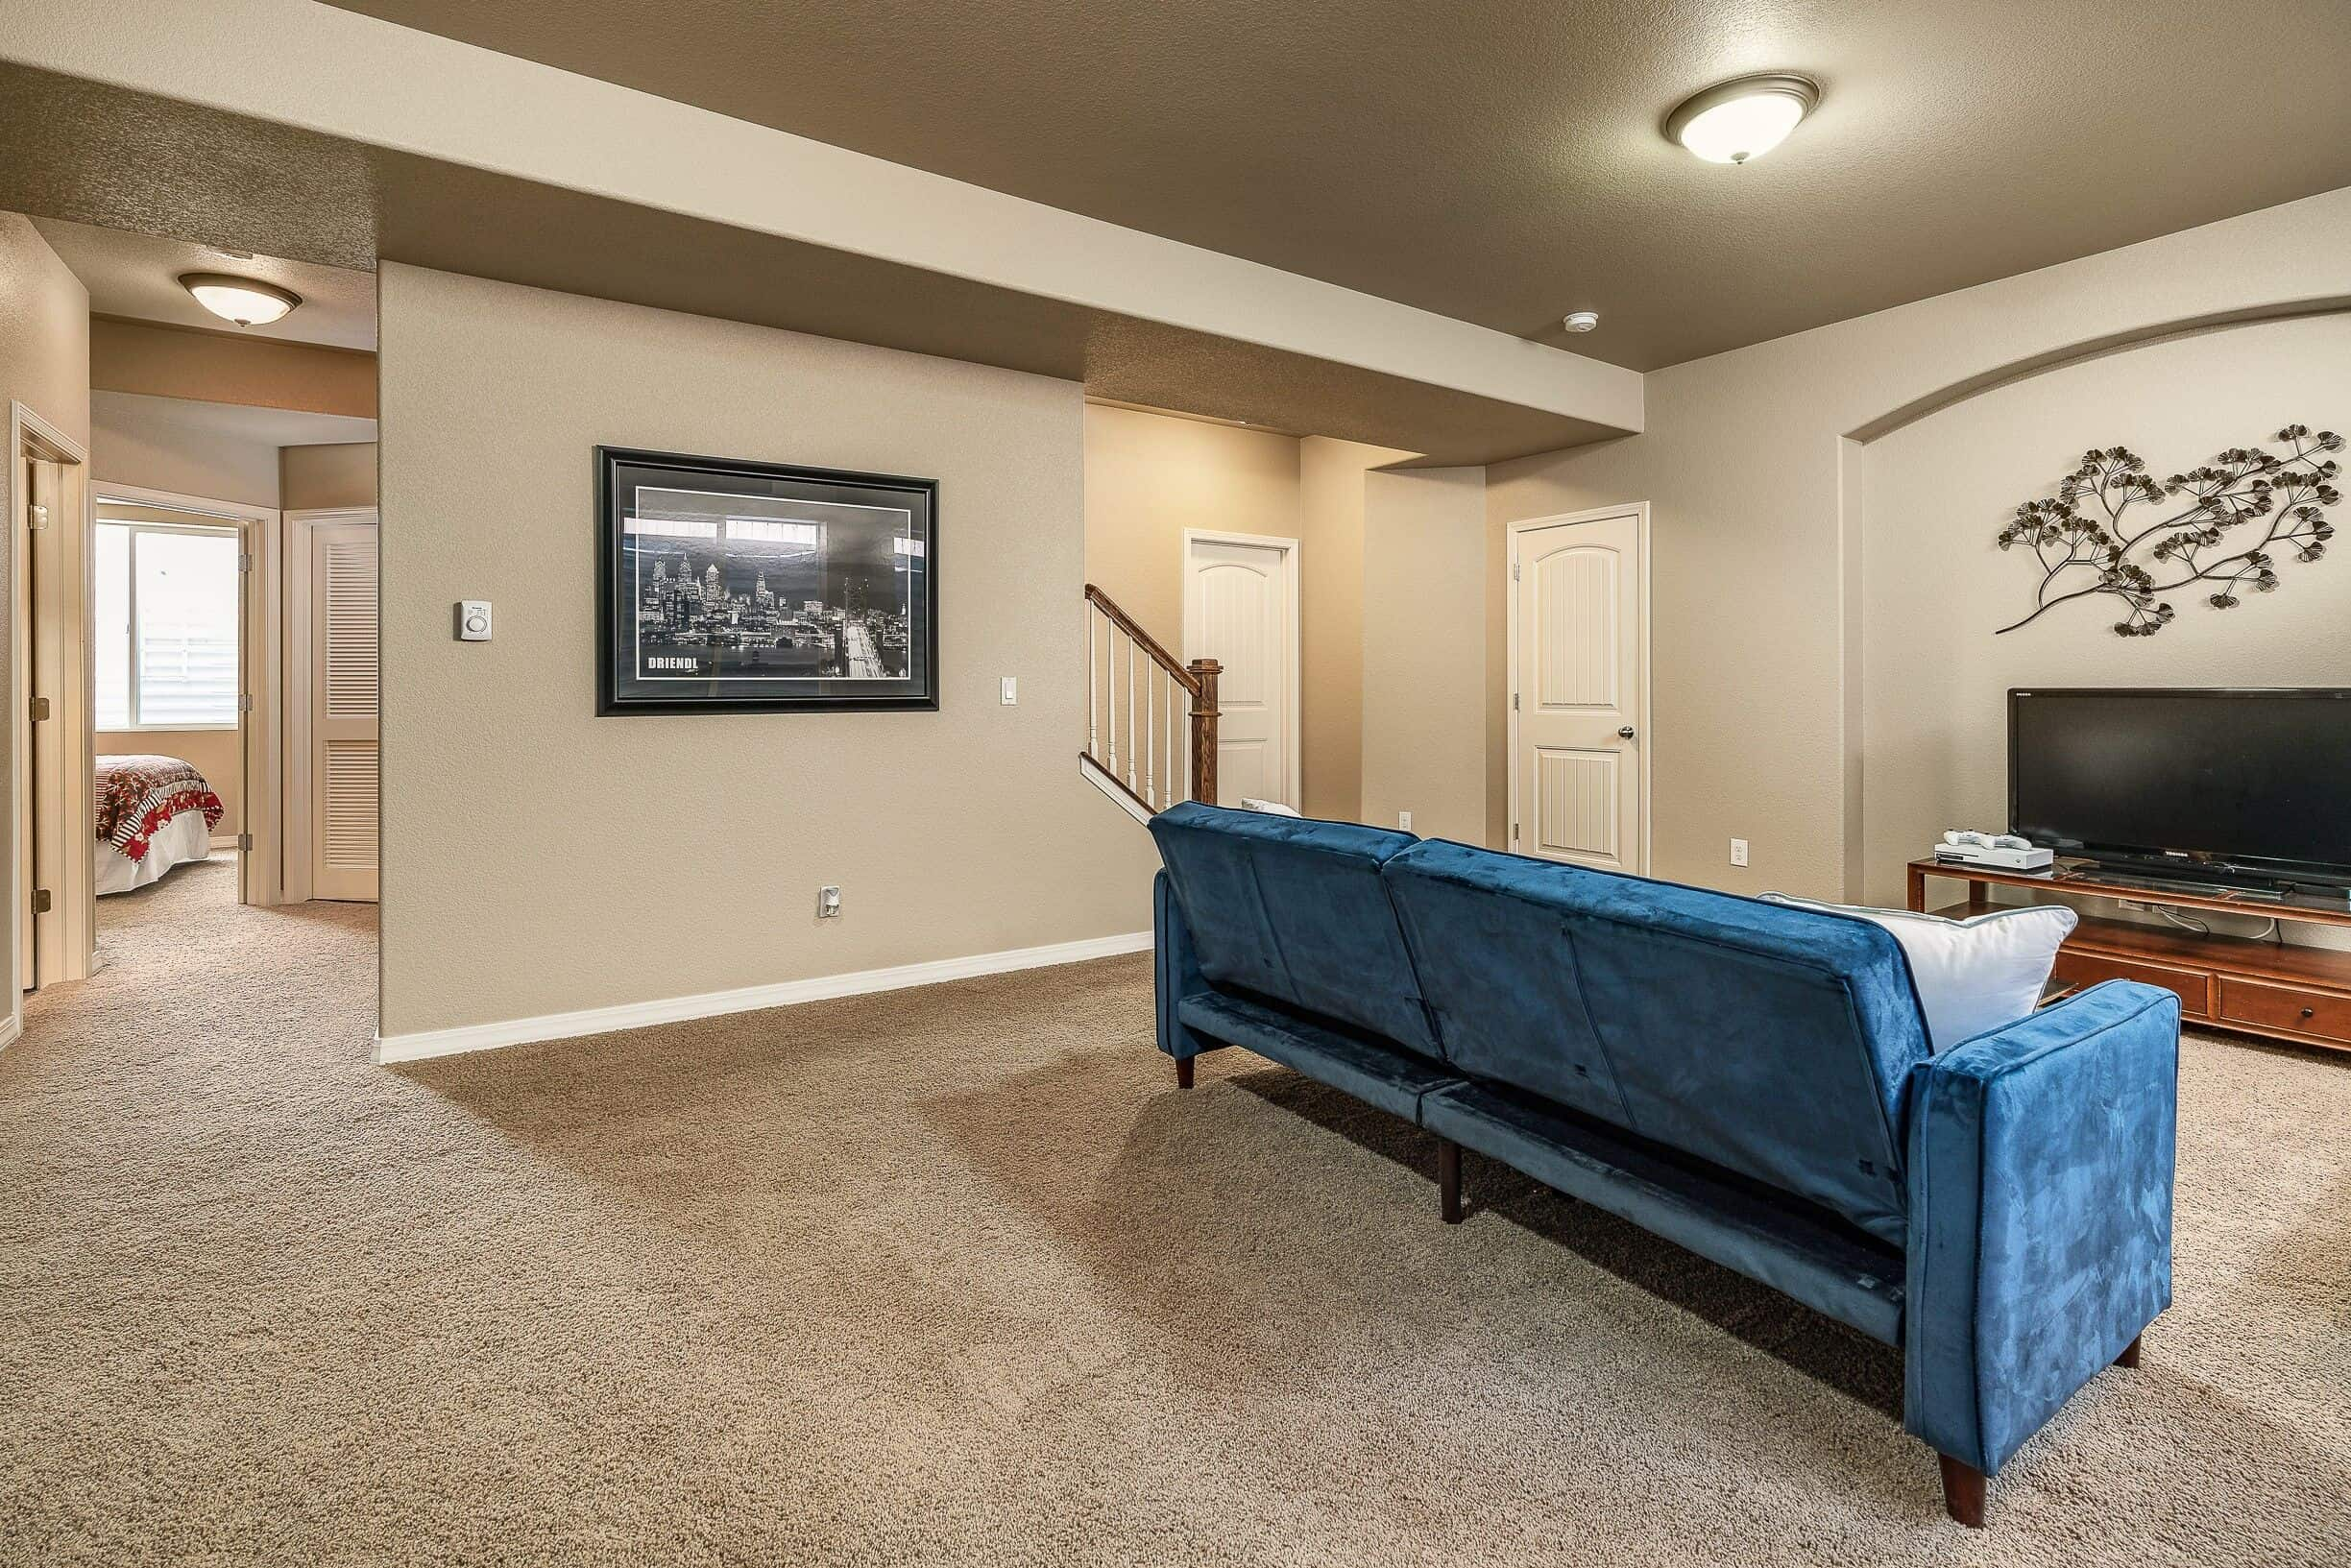 Stairway into Basement and Recreation Room